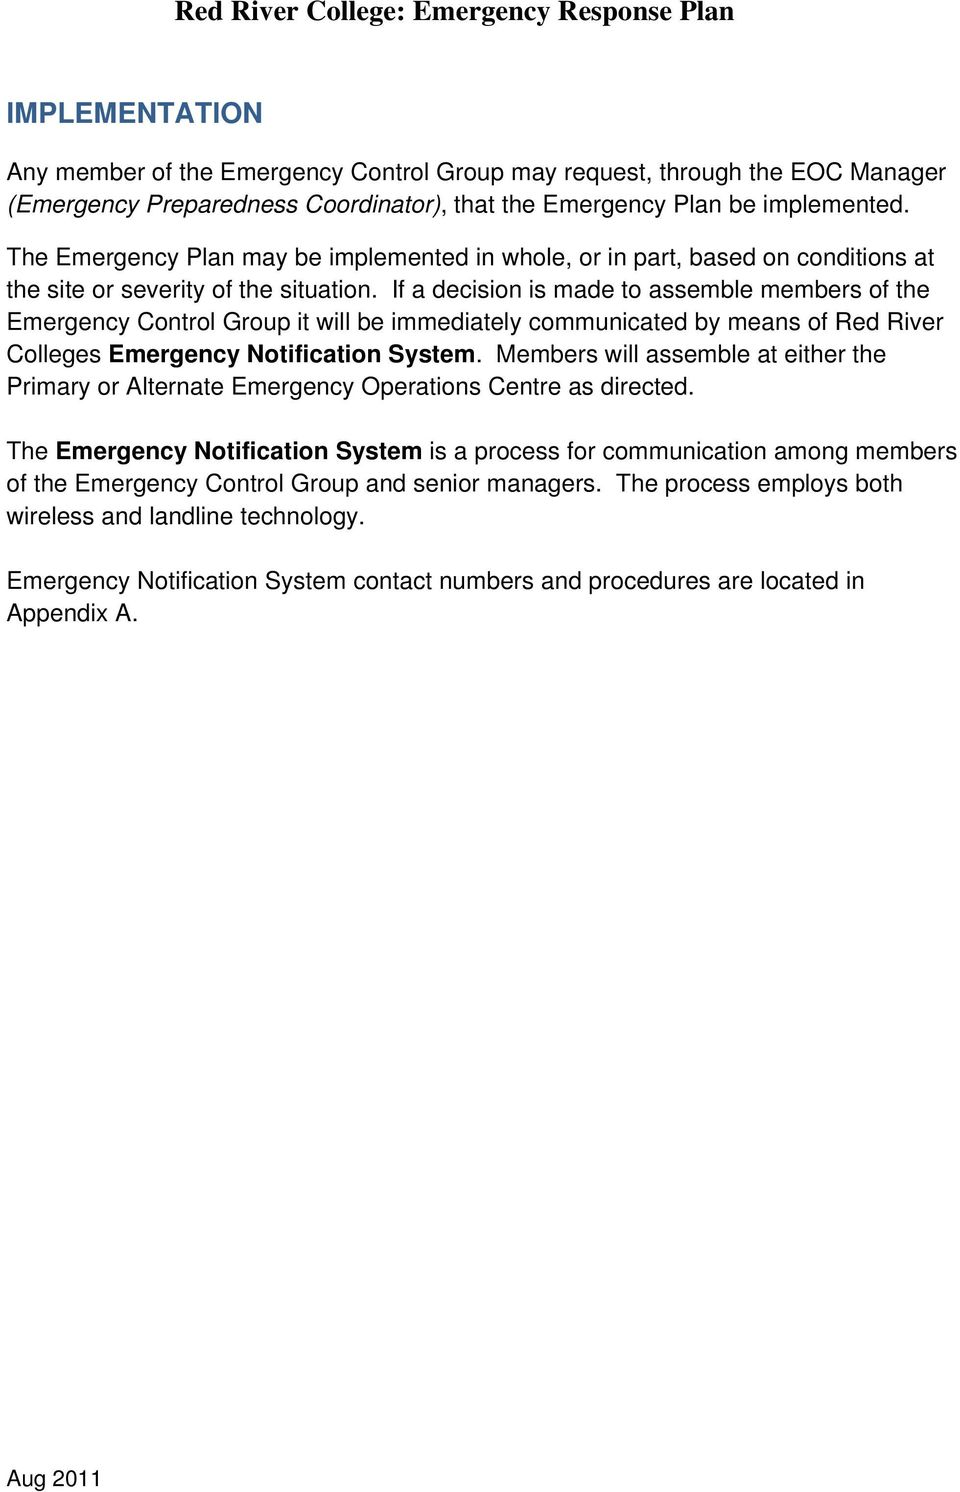 If a decision is made to assemble members of the Emergency Control Group it will be immediately communicated by means of Red River Colleges Emergency Notification System.